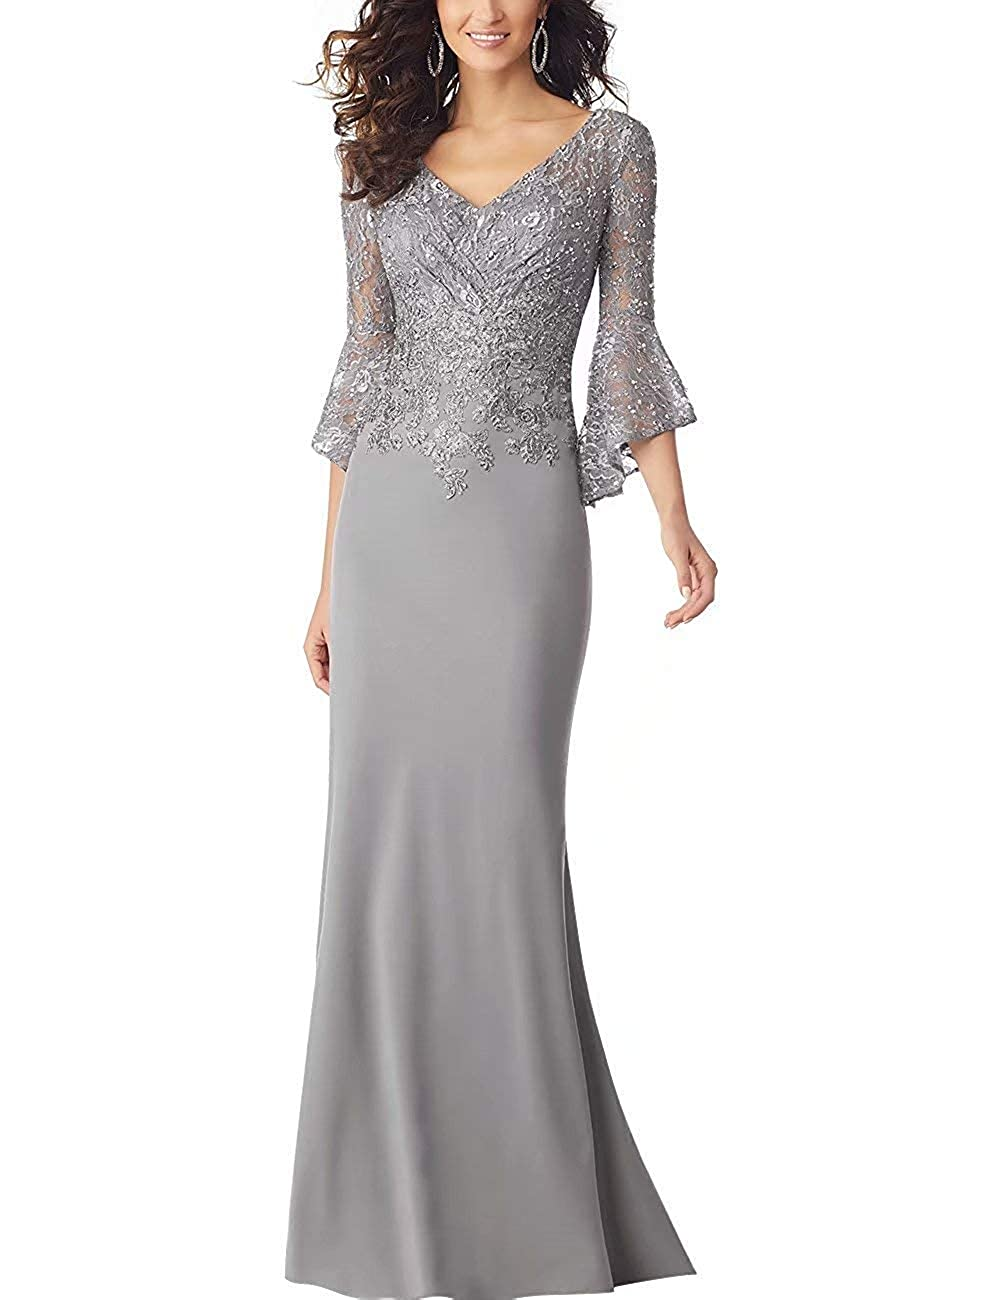 Silver PearlBridal Women's Bodycon Mermaid Mother of The Bride Dresses Lace Ruffle Sleeves Long Evening Party Gown